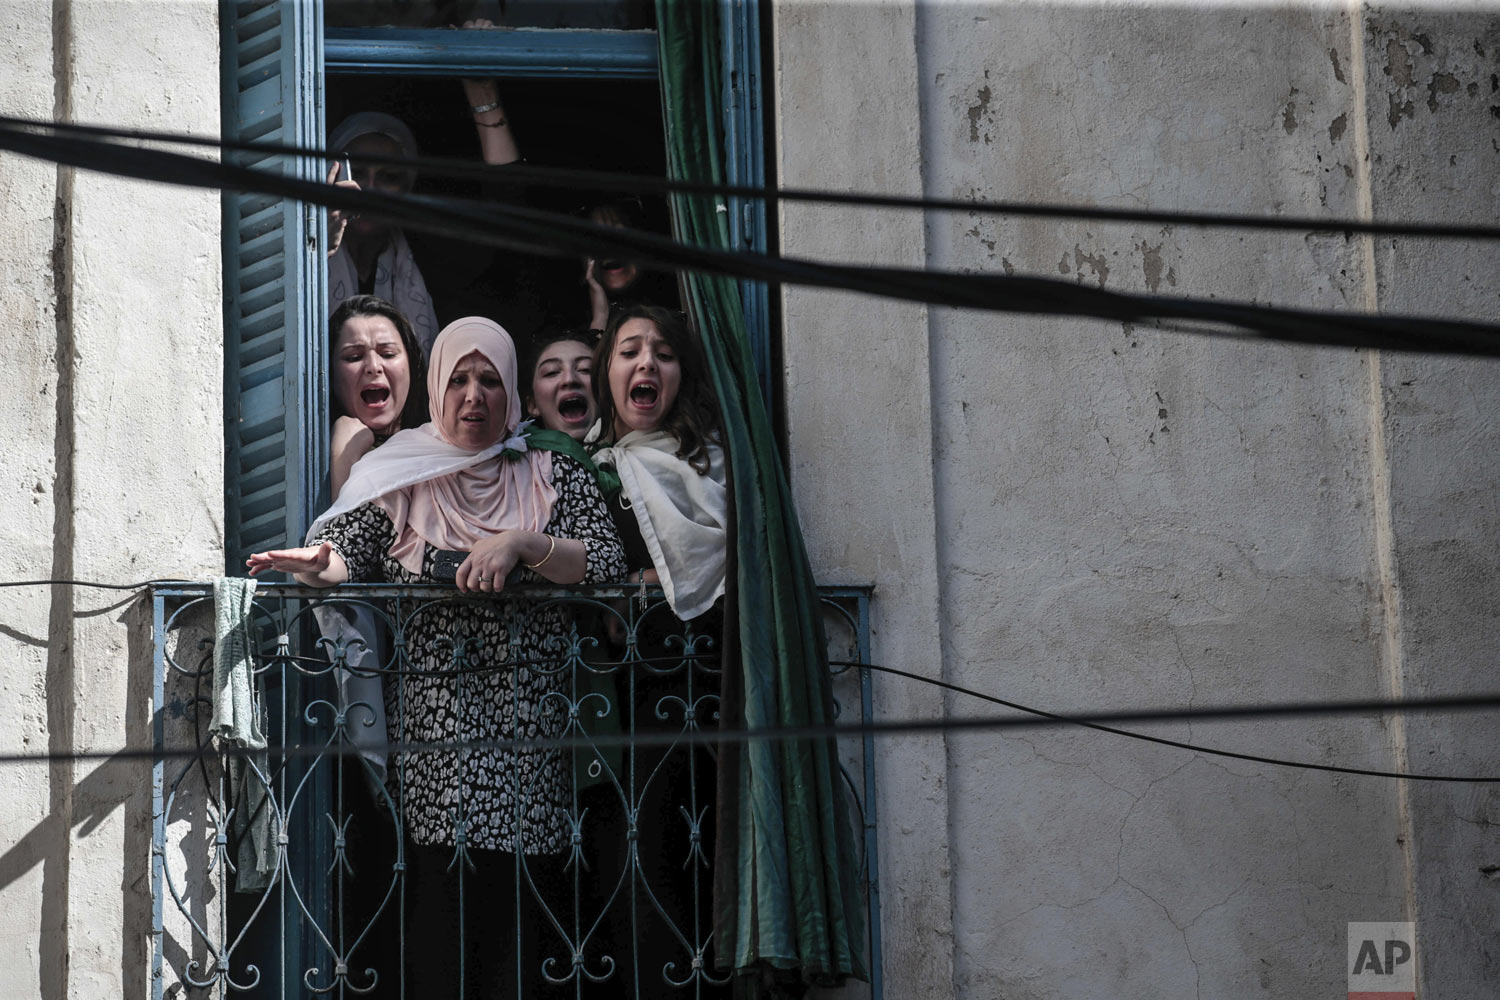 Onlookers react from a balcony as police clash with protesters during a demonstration against the country's leadership, in Algiers, Algeria, on Friday, April 12, 2019. Heavy police deployment and repeated volleys of water cannons and tear gas didn't deter masses of citizens from packing the streets of the capital Friday, insisting that their revolution isn't over just because the president stepped down. (AP Photo/Mosa'ab Elshamy)